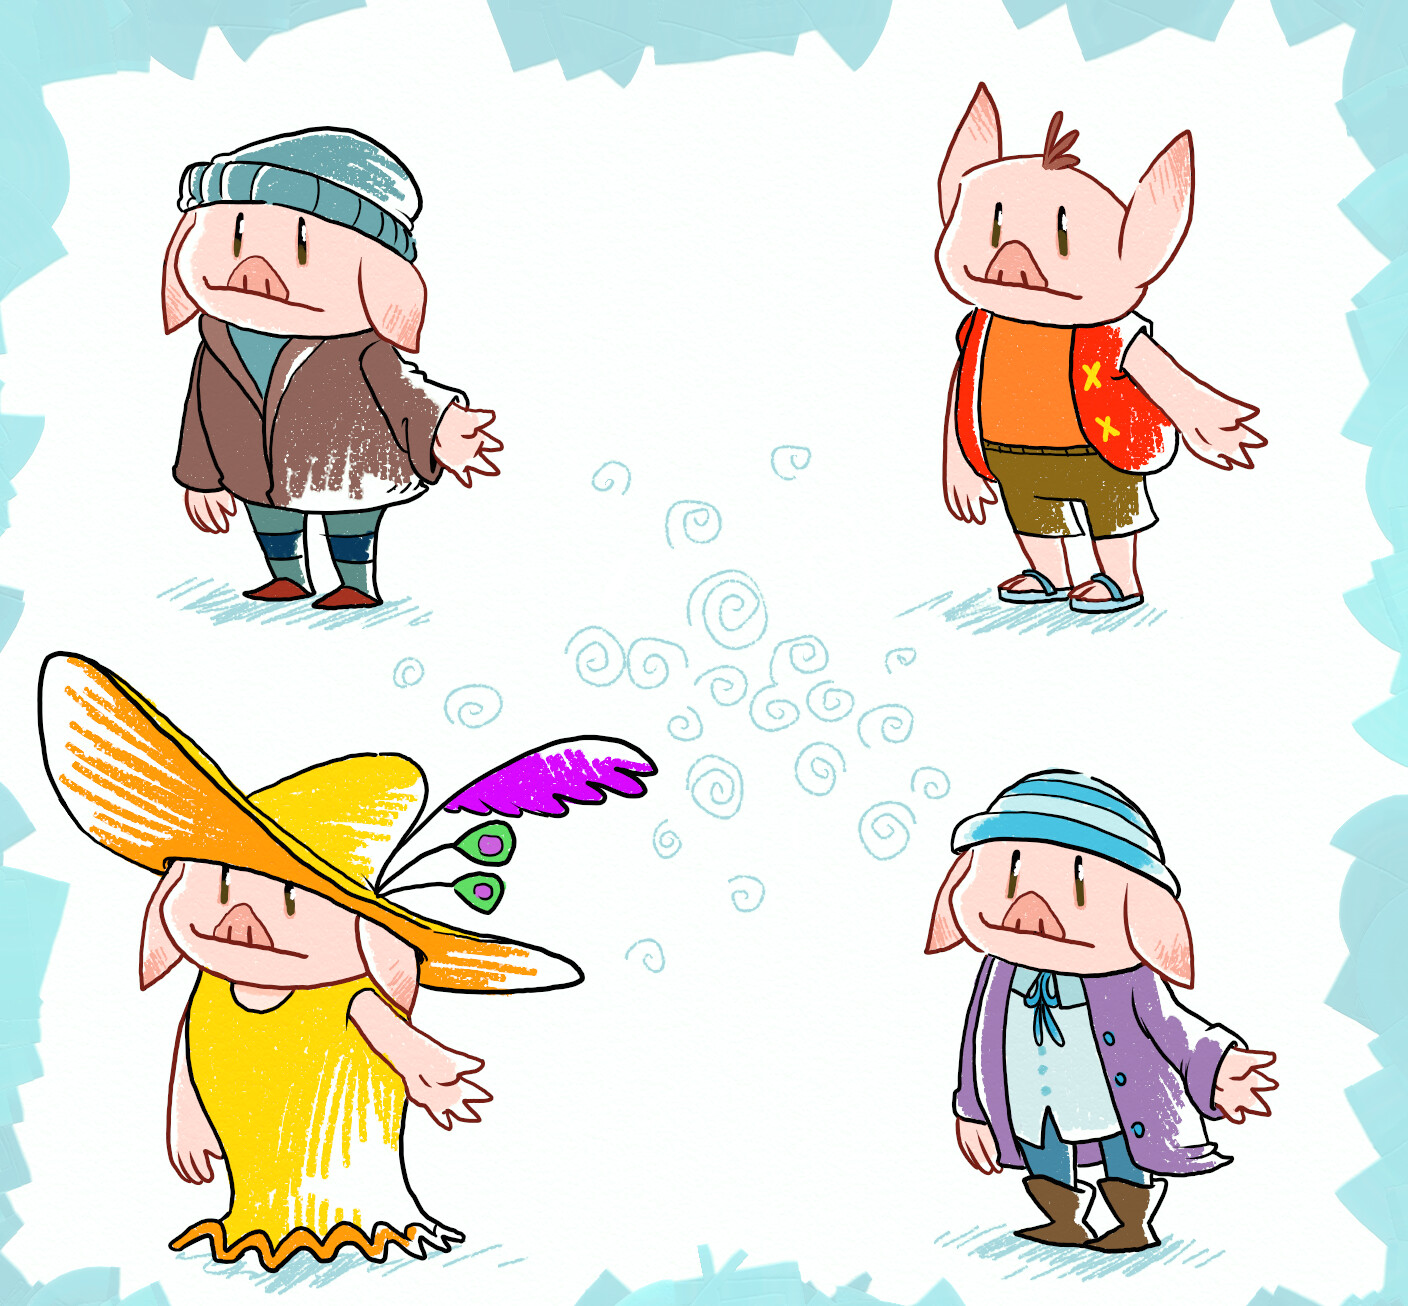 some alternate outfits